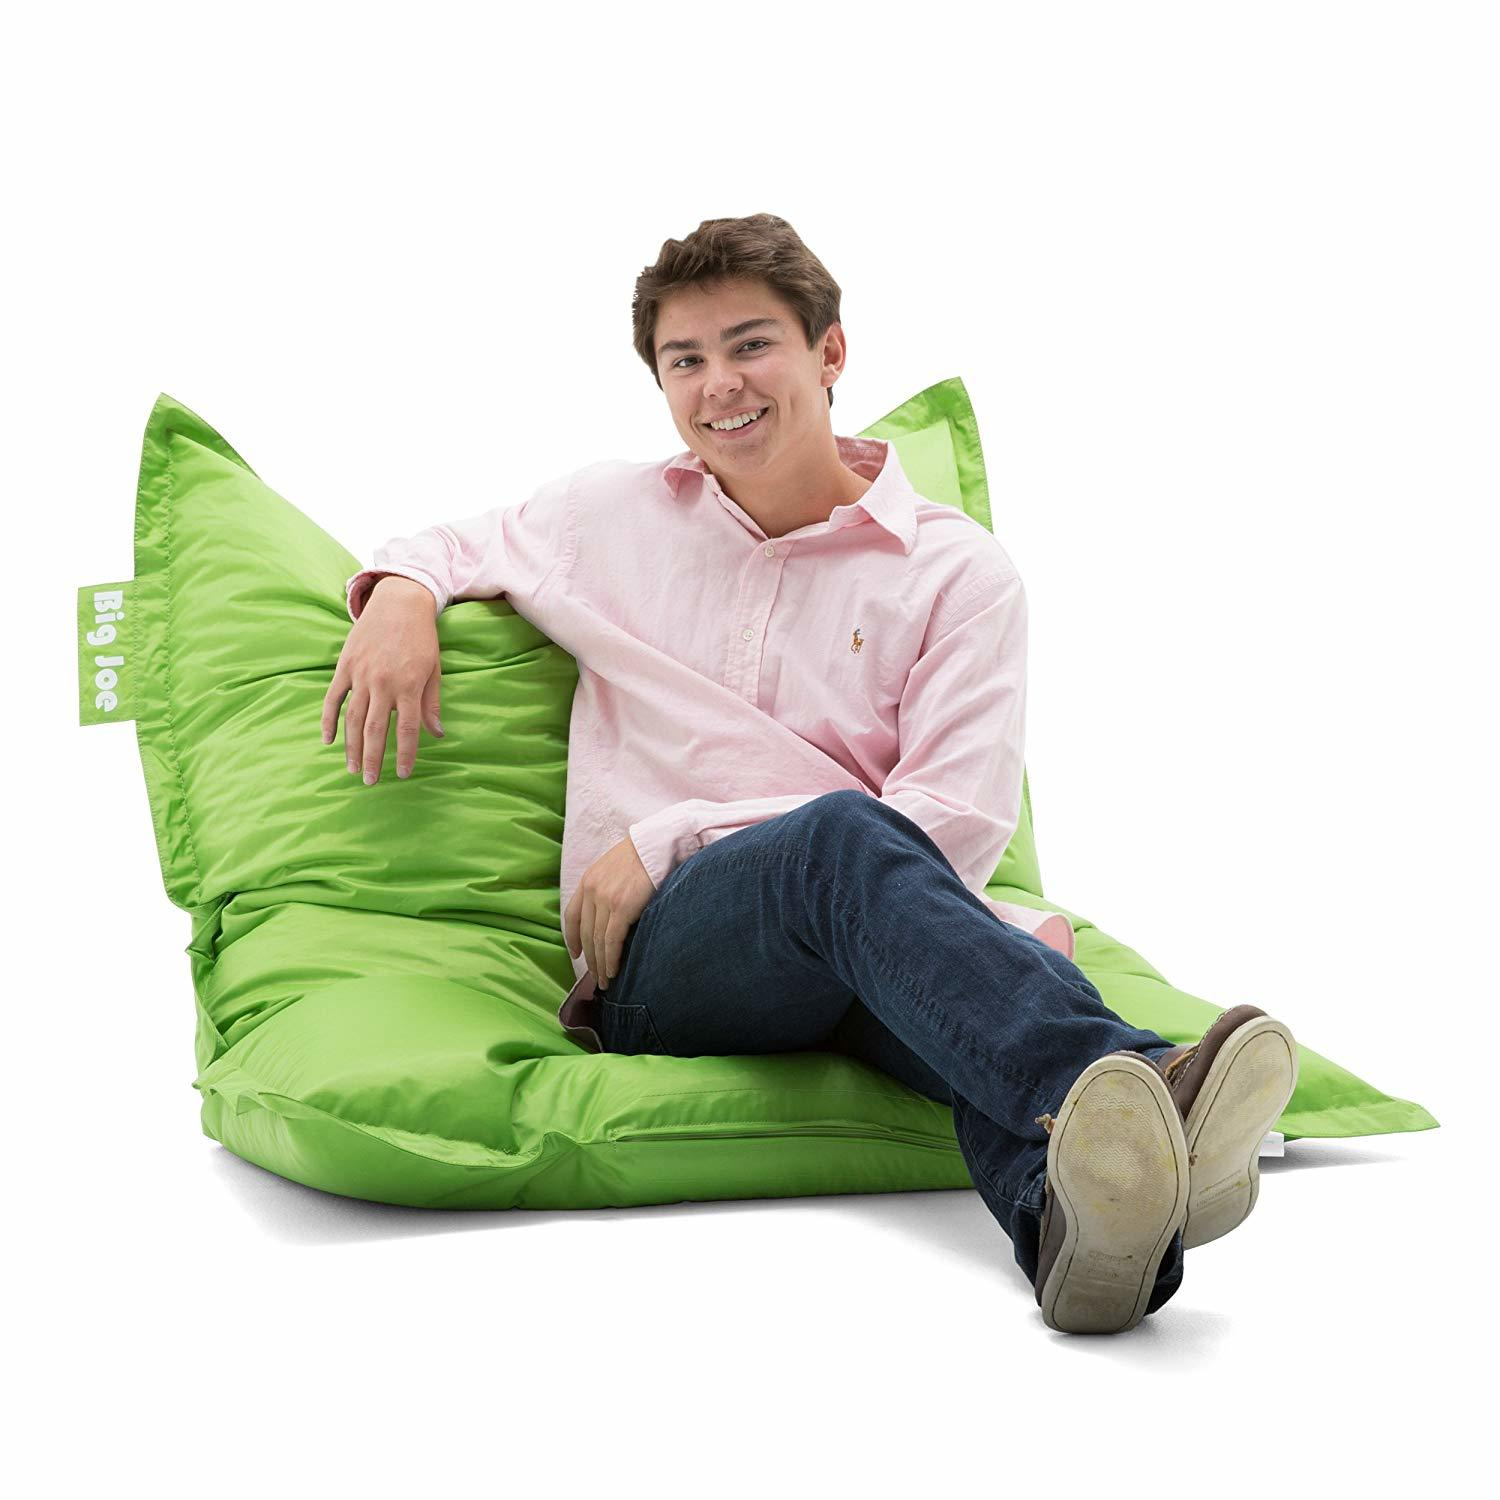 Best Bean Bag Chairs Big Joe 640185 Original Bean Bag Chair 75a994395e2ce